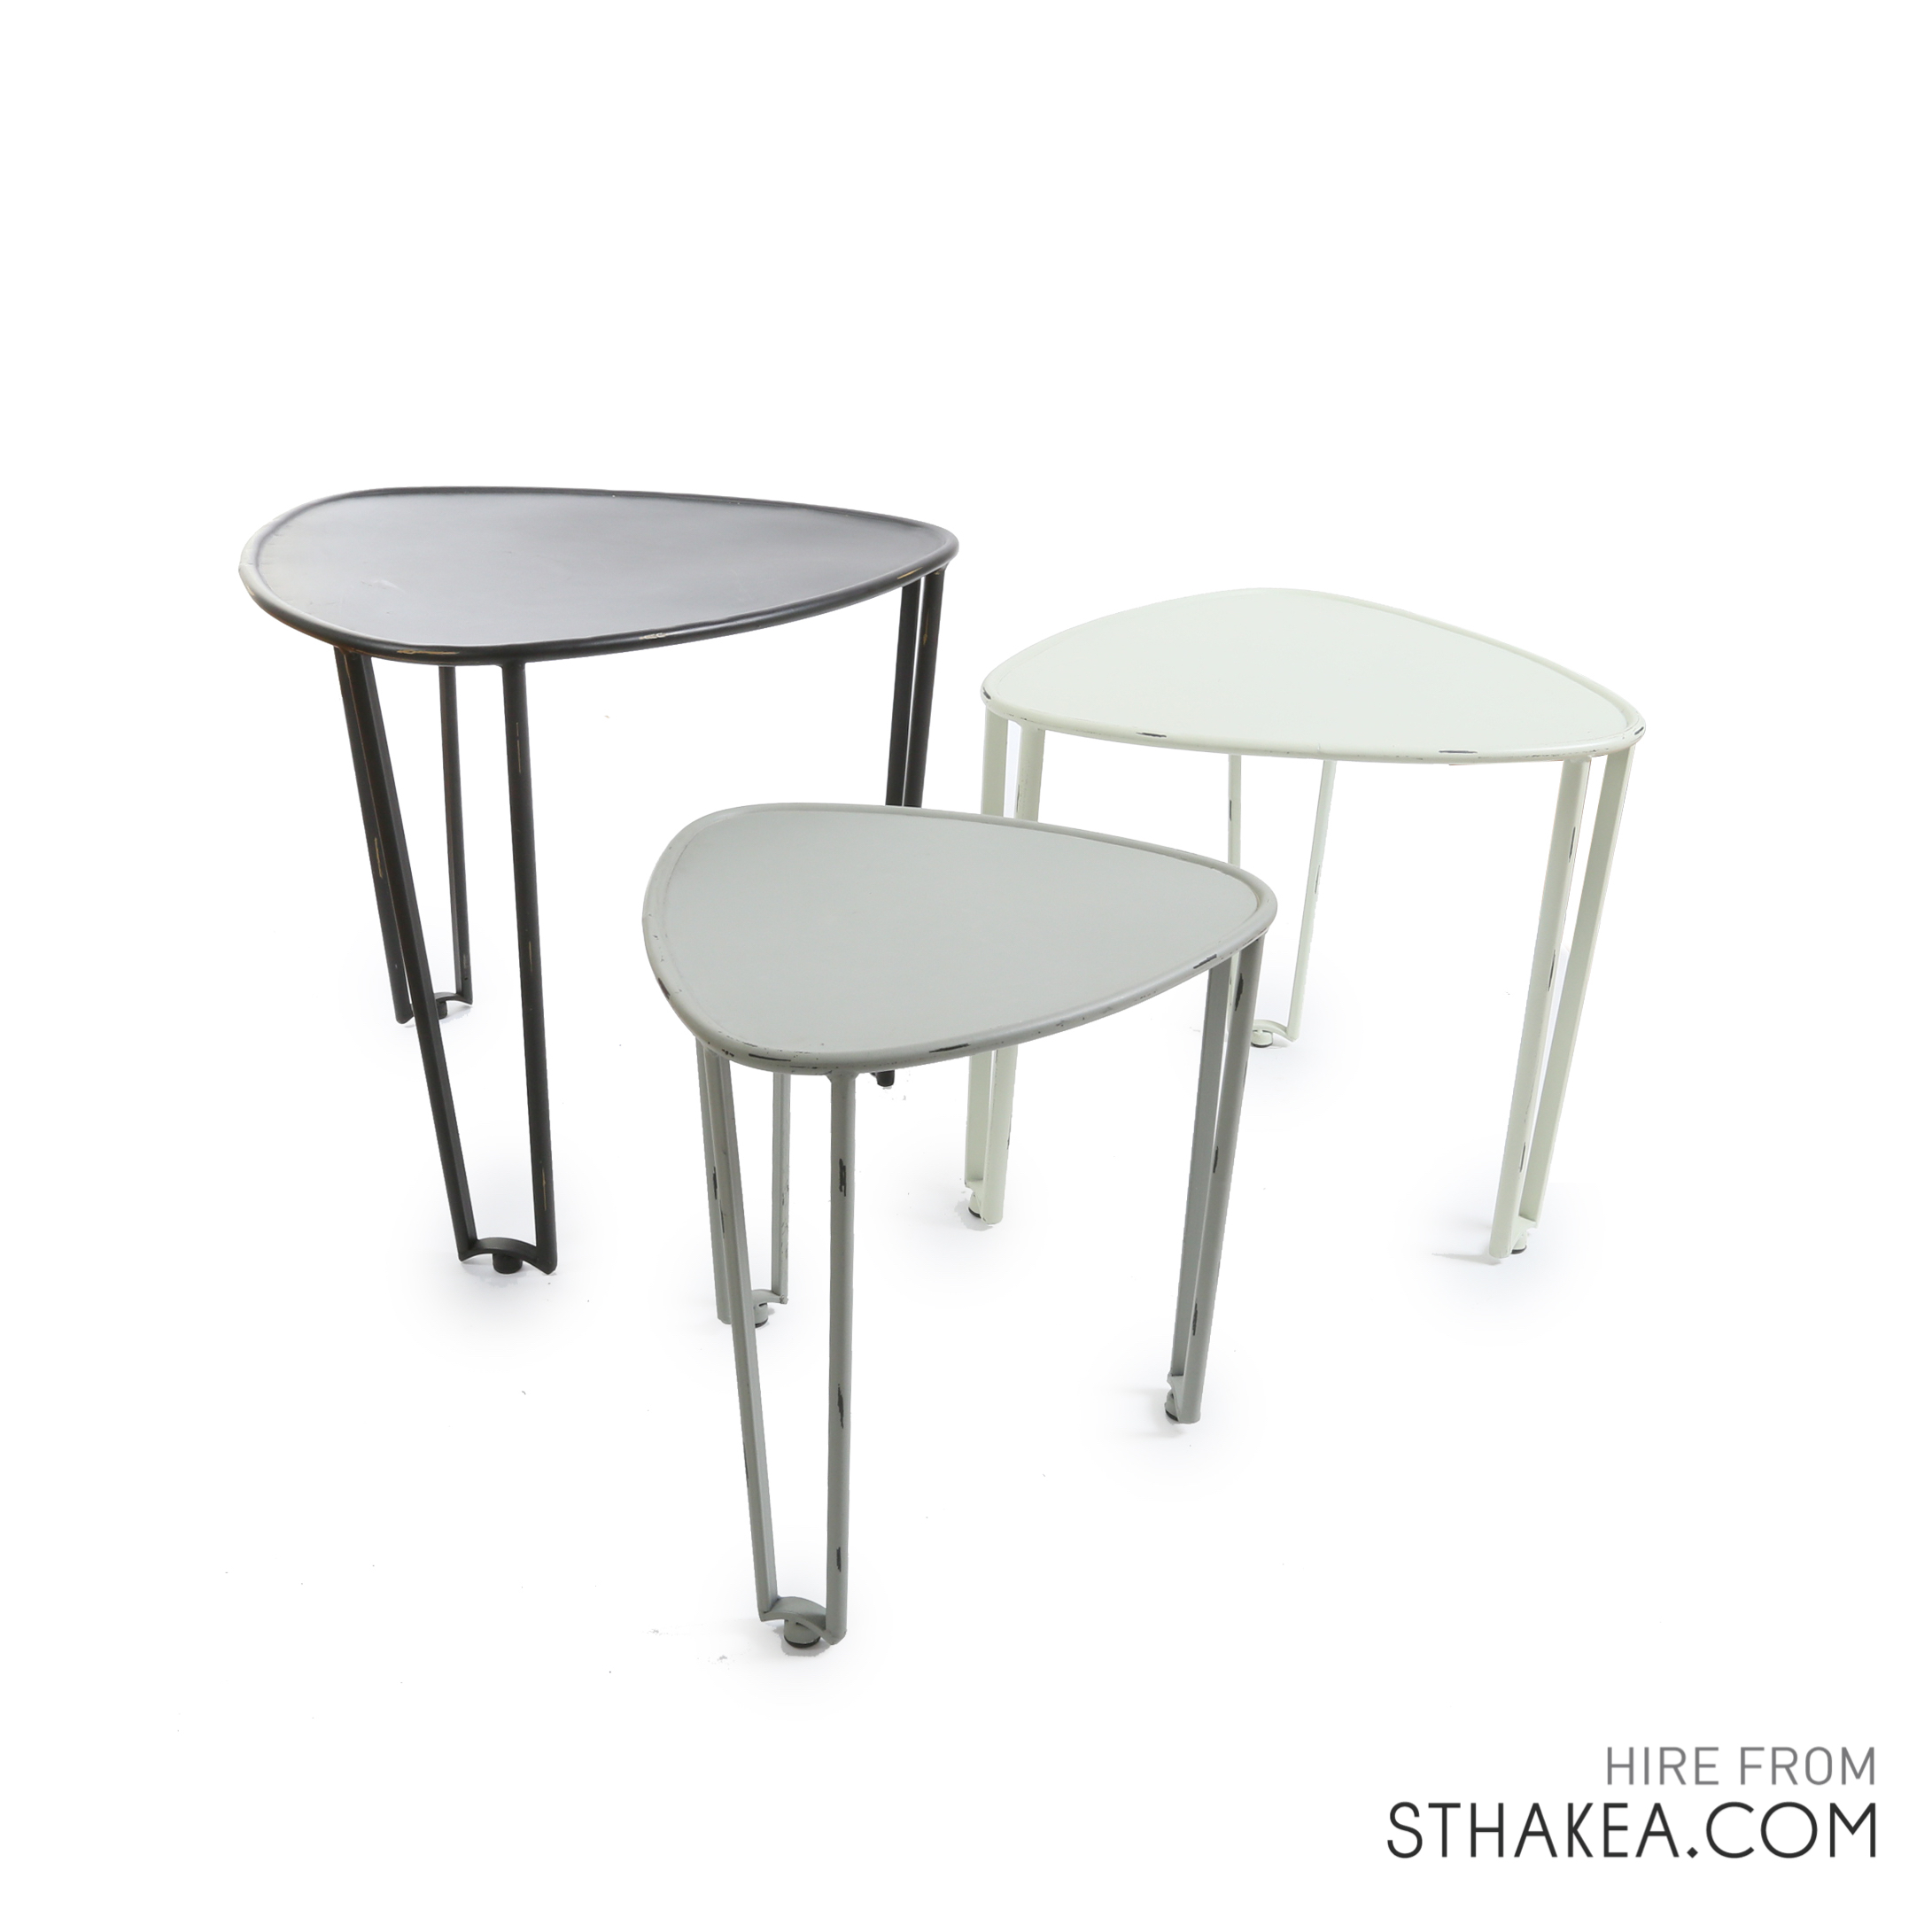 St Hakea Melbourne Event Hire Monochrome side tables.jpg